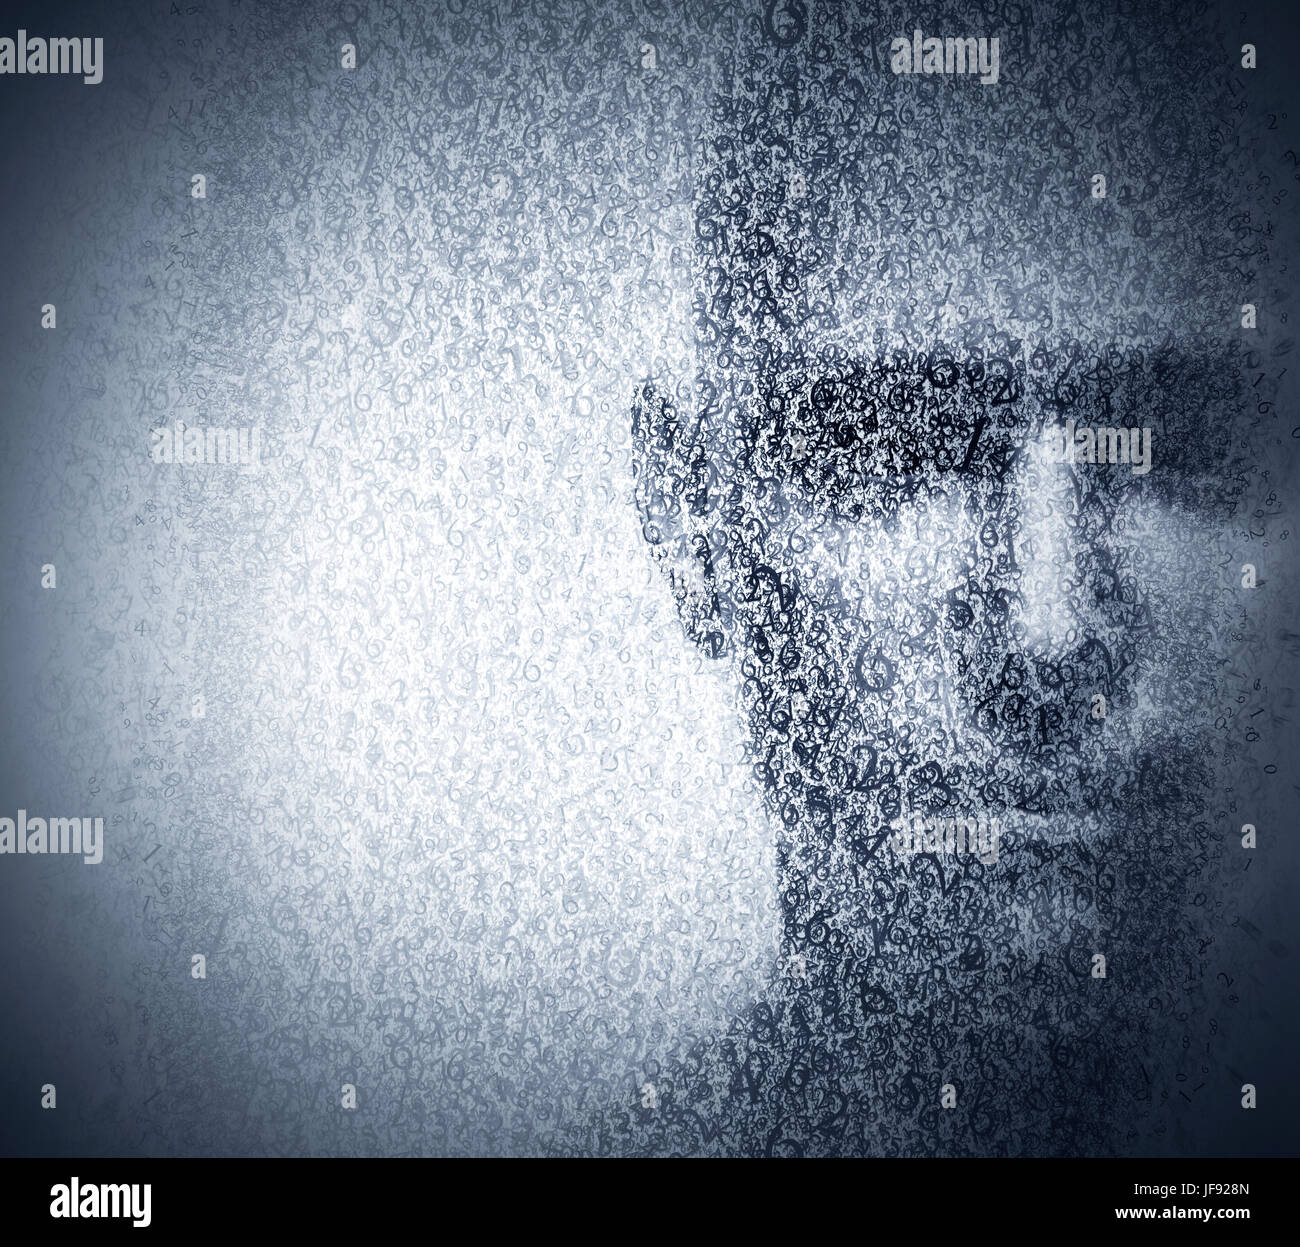 Man face blended with binary code digits. Concept of hacker, coding, programming, data protection etc. - Stock Image